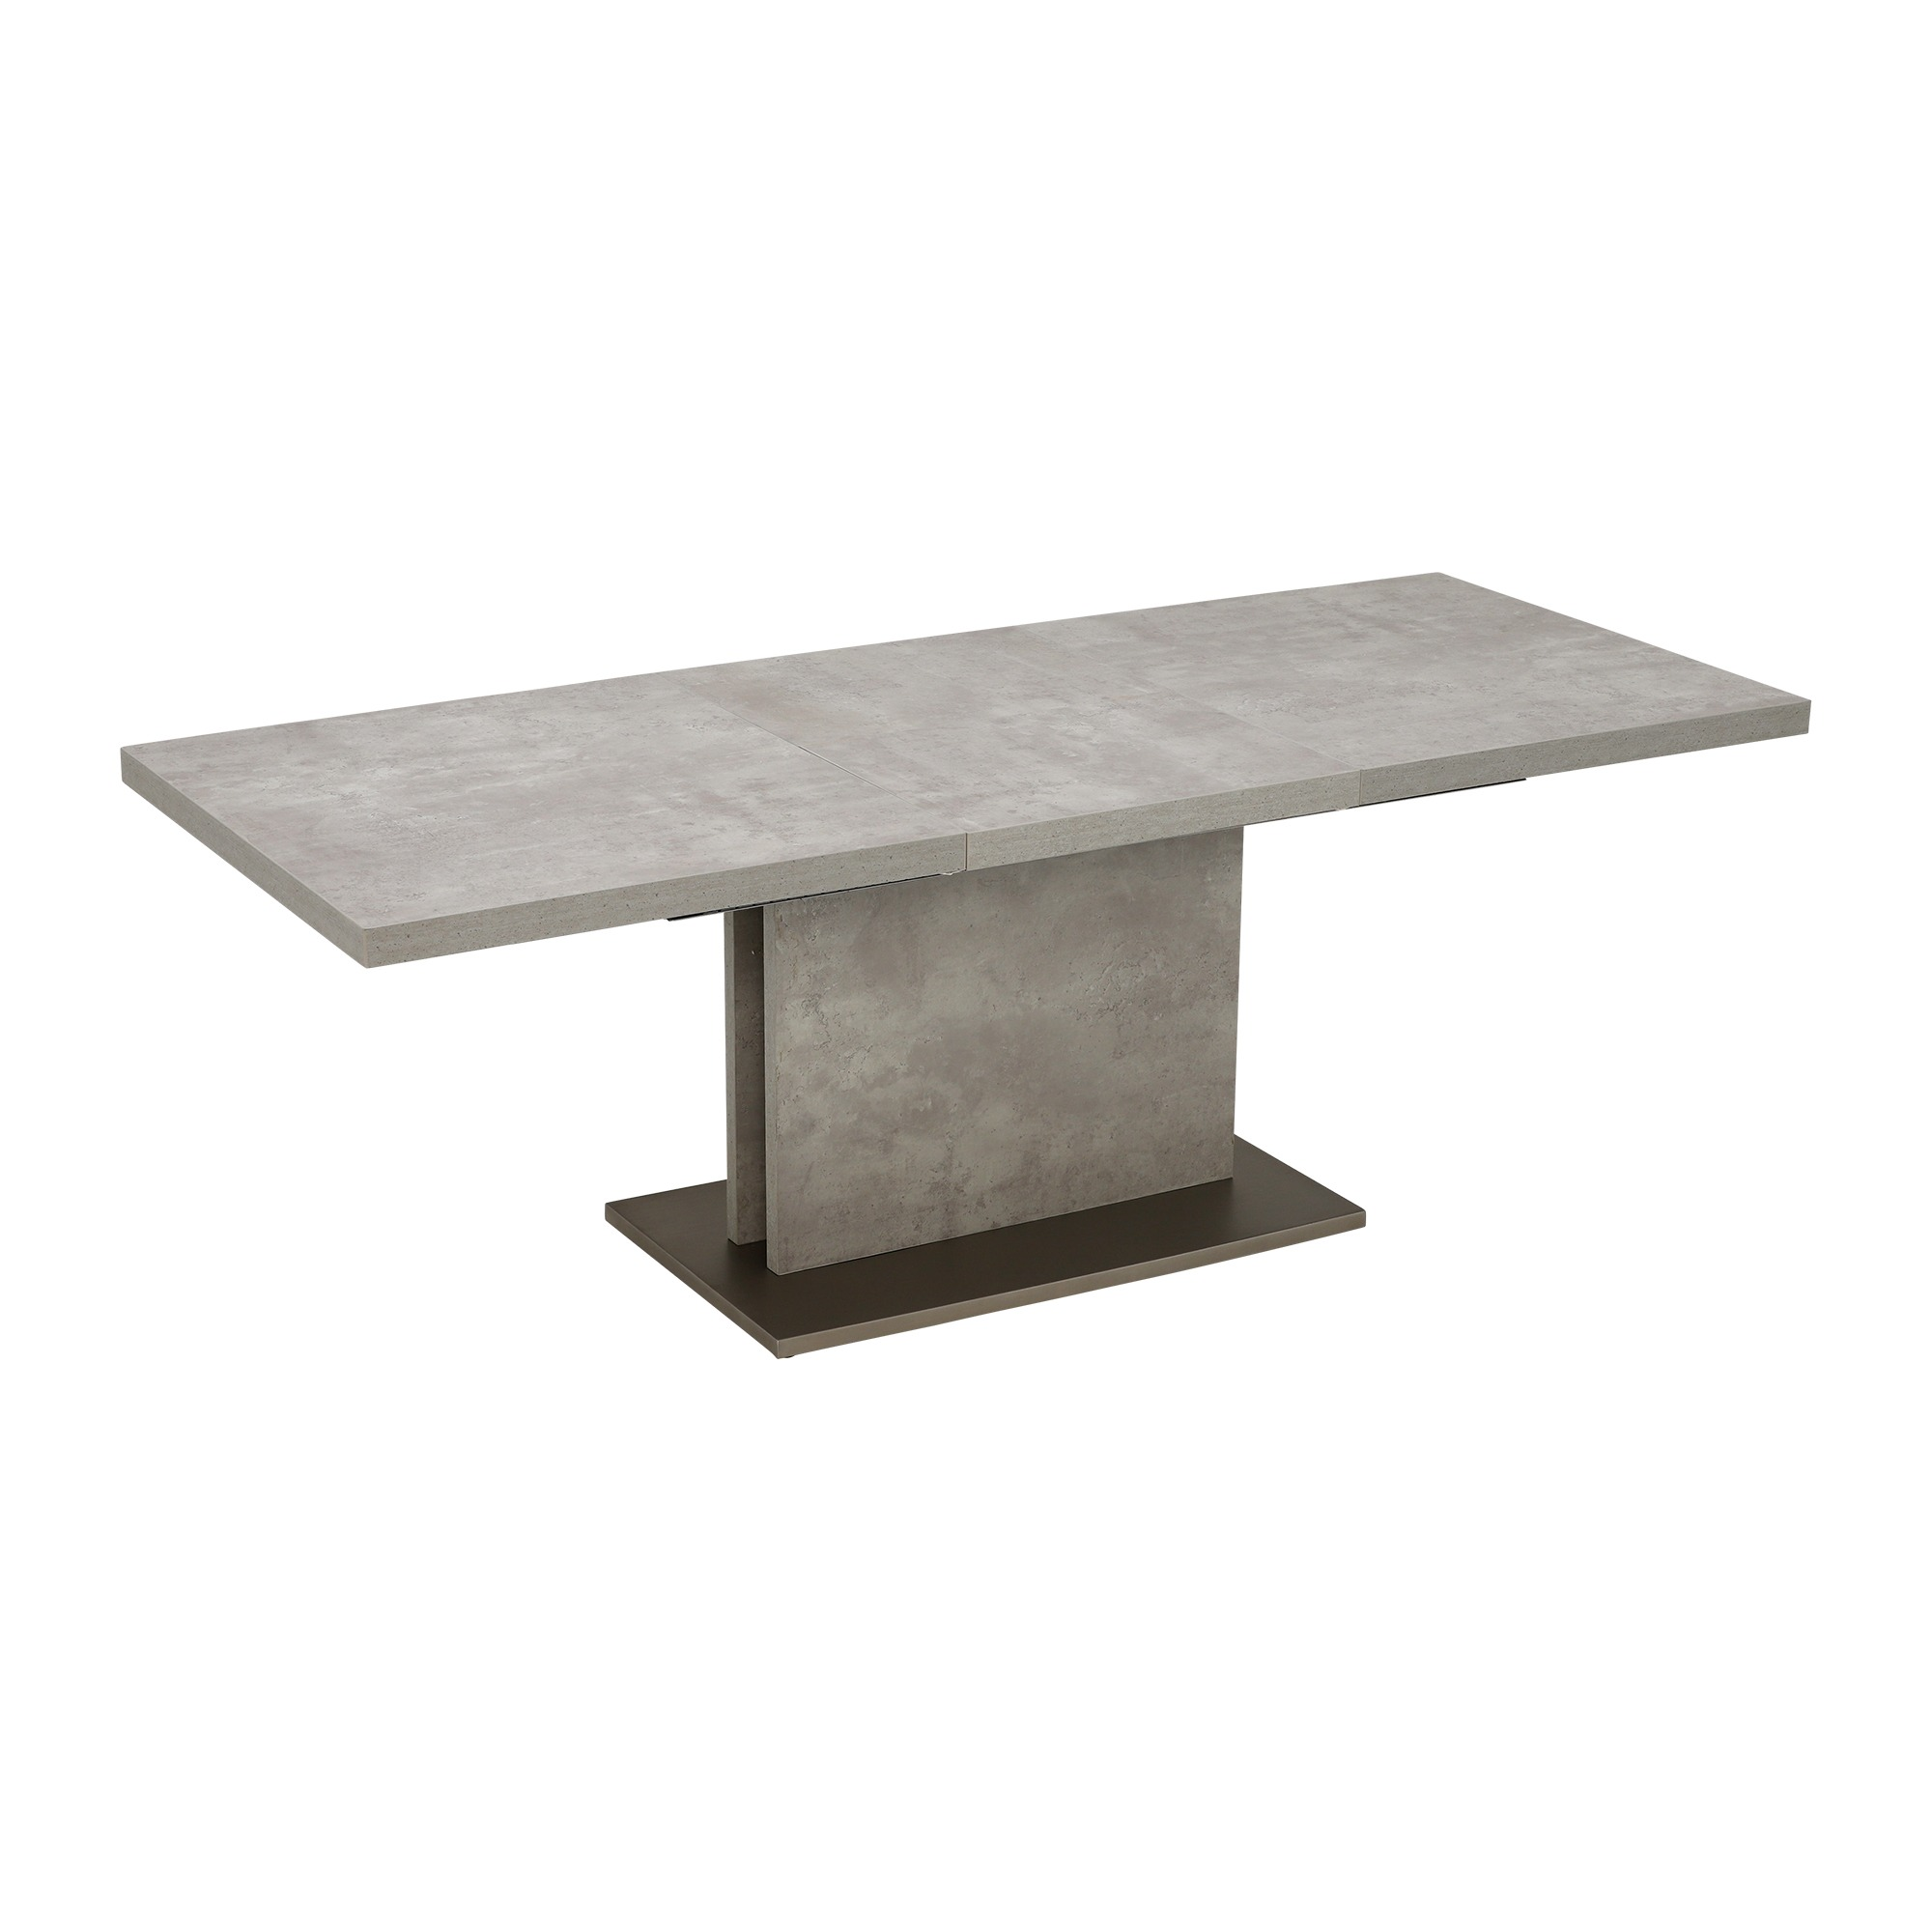 CONCRETE LOOK EXTENDING TABLE - OPENED - L220cm x D90cm x H76cm